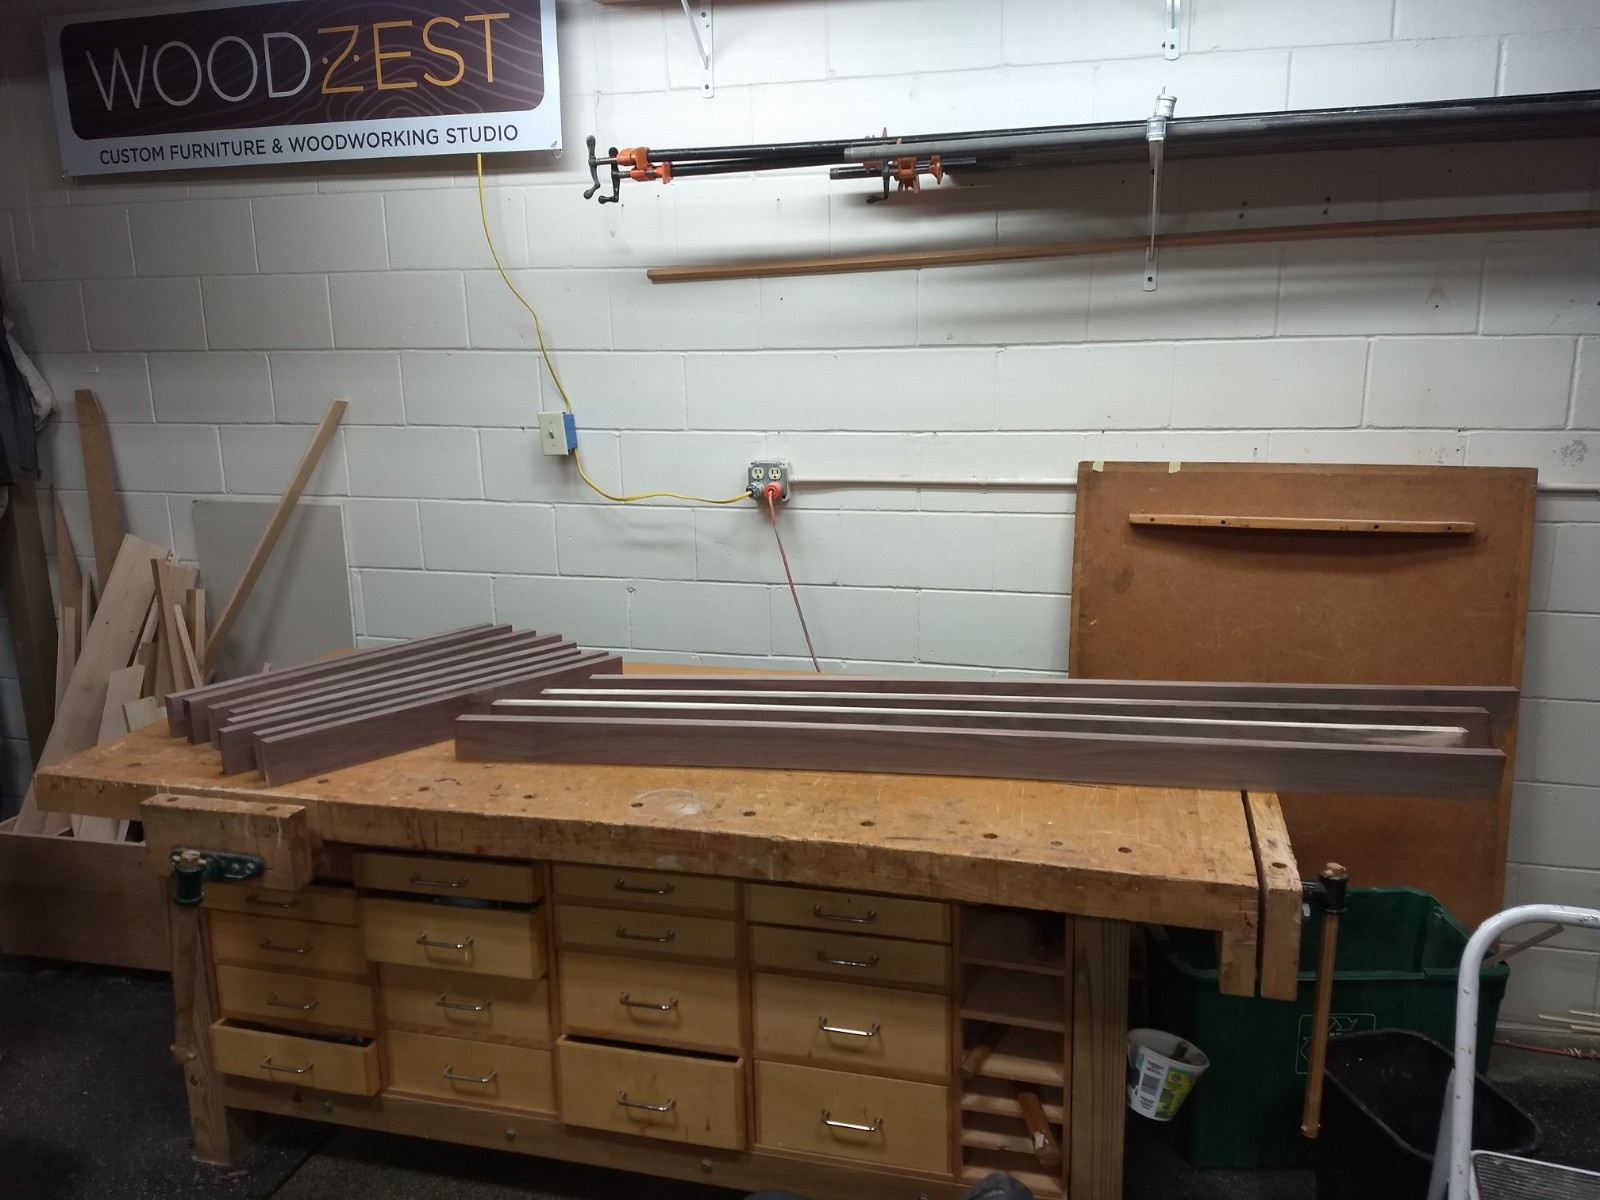 Rough cut pieces relaxing on the bench